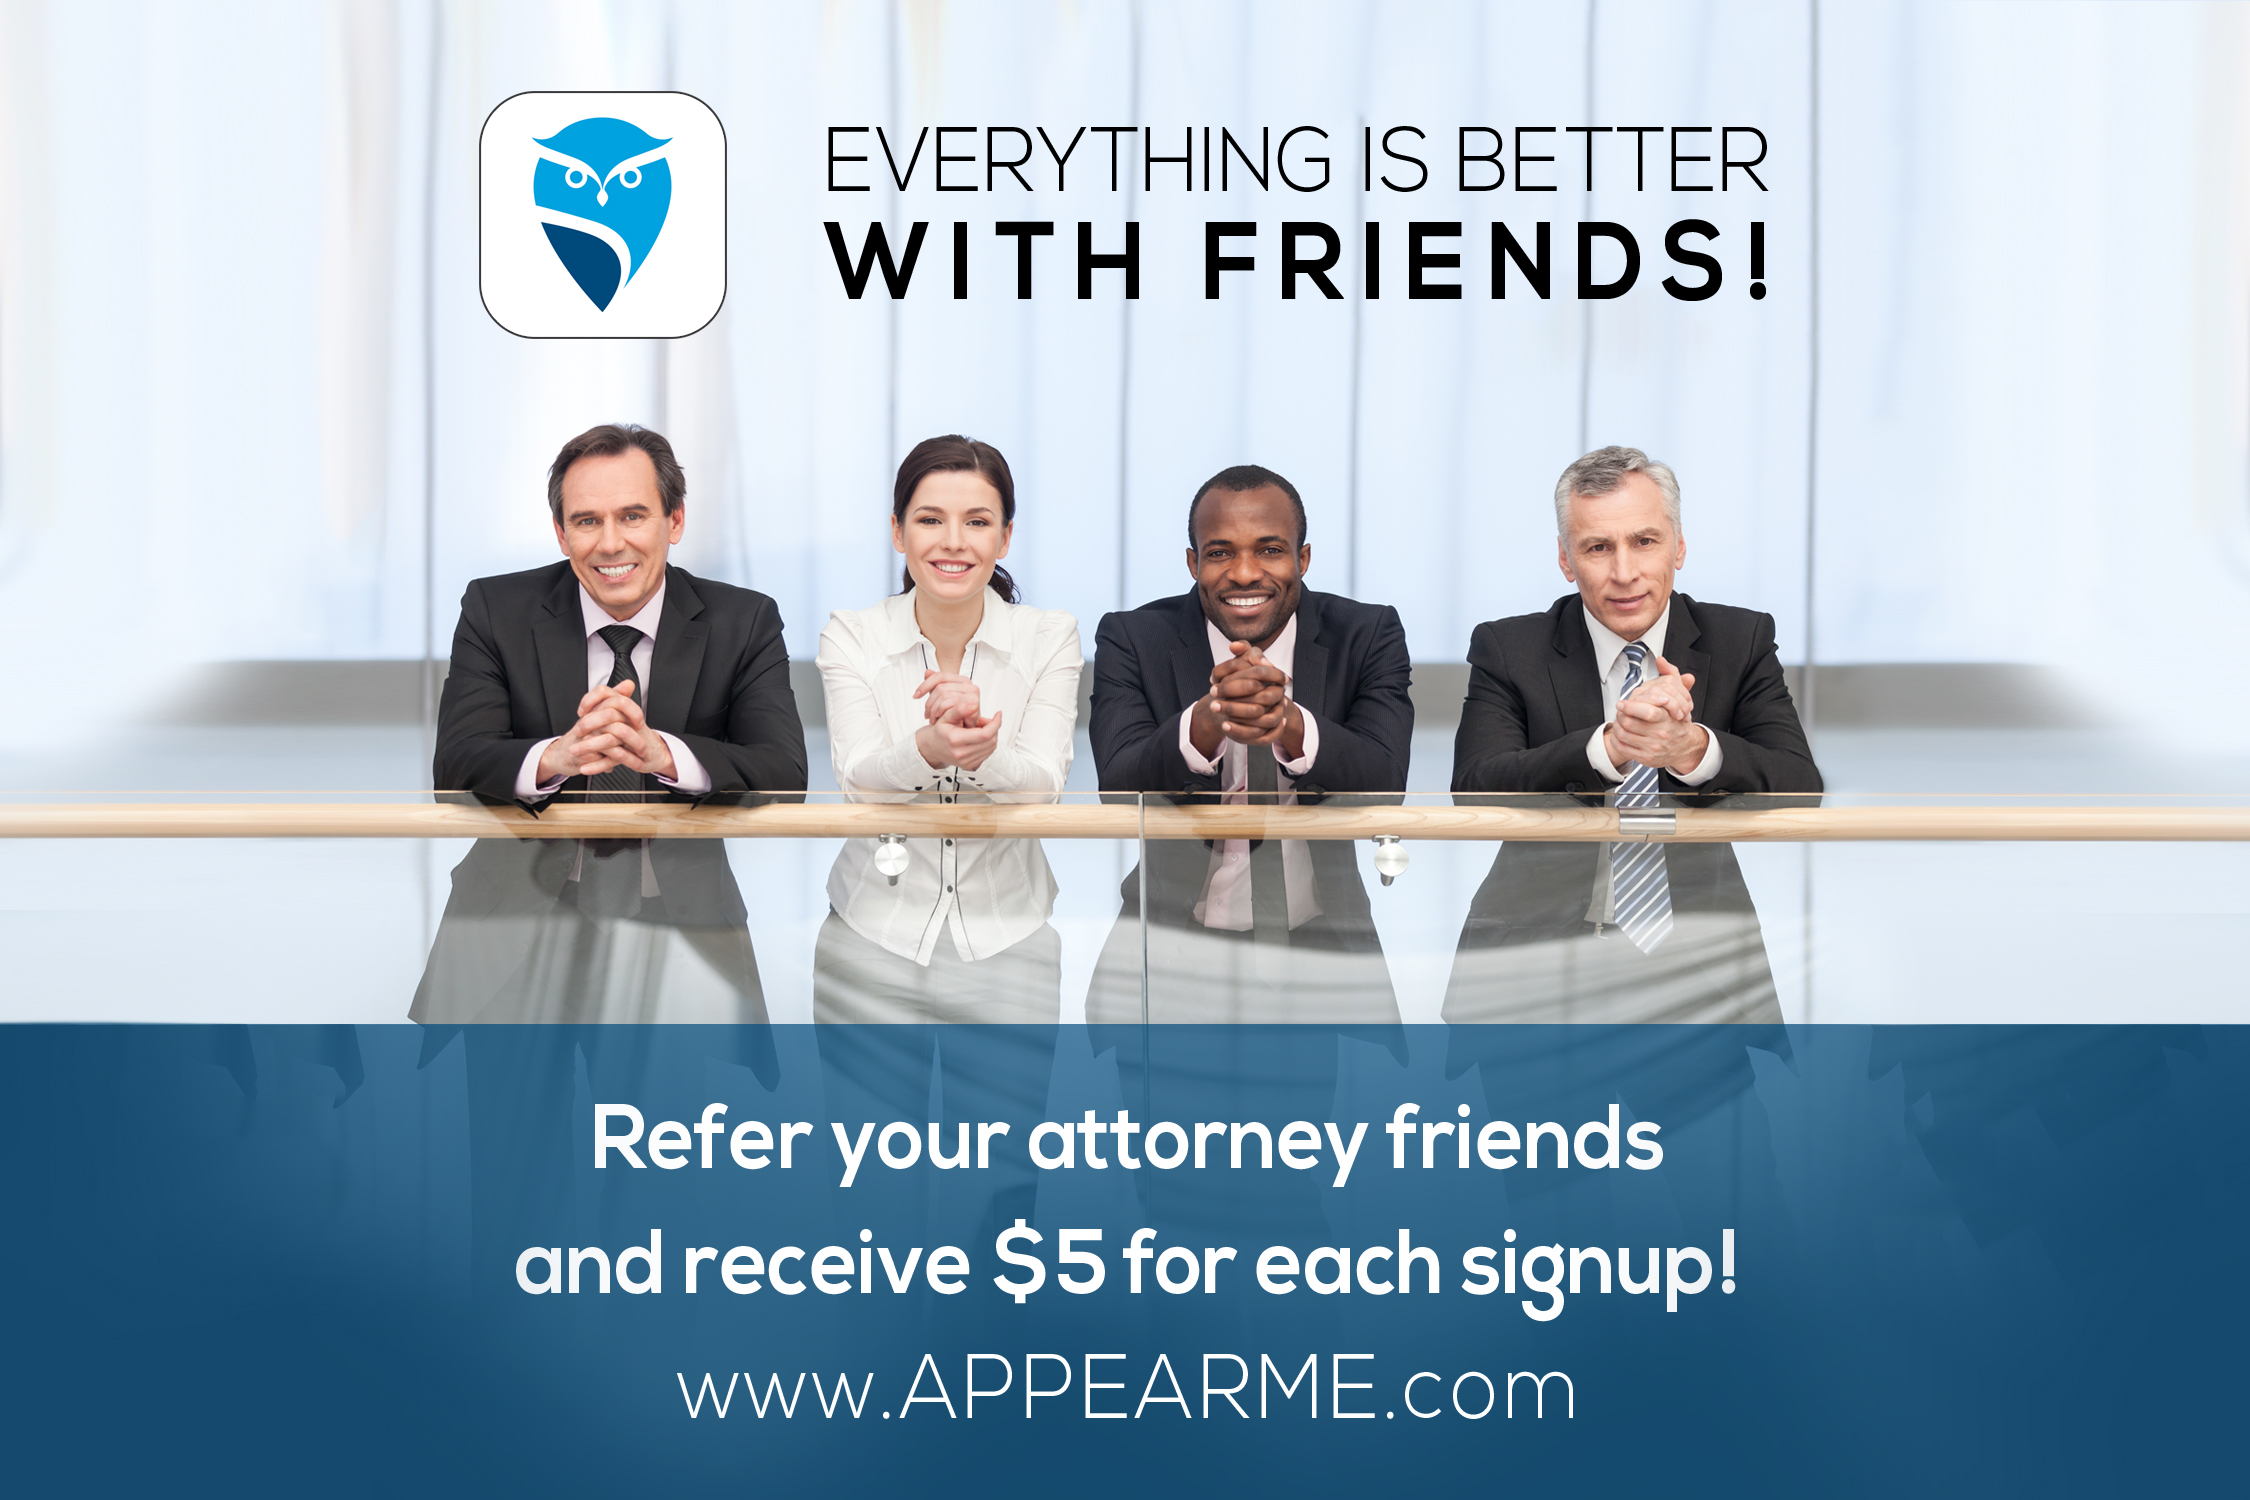 Invite Your Attorney Friends and Get $5 for Each Signup